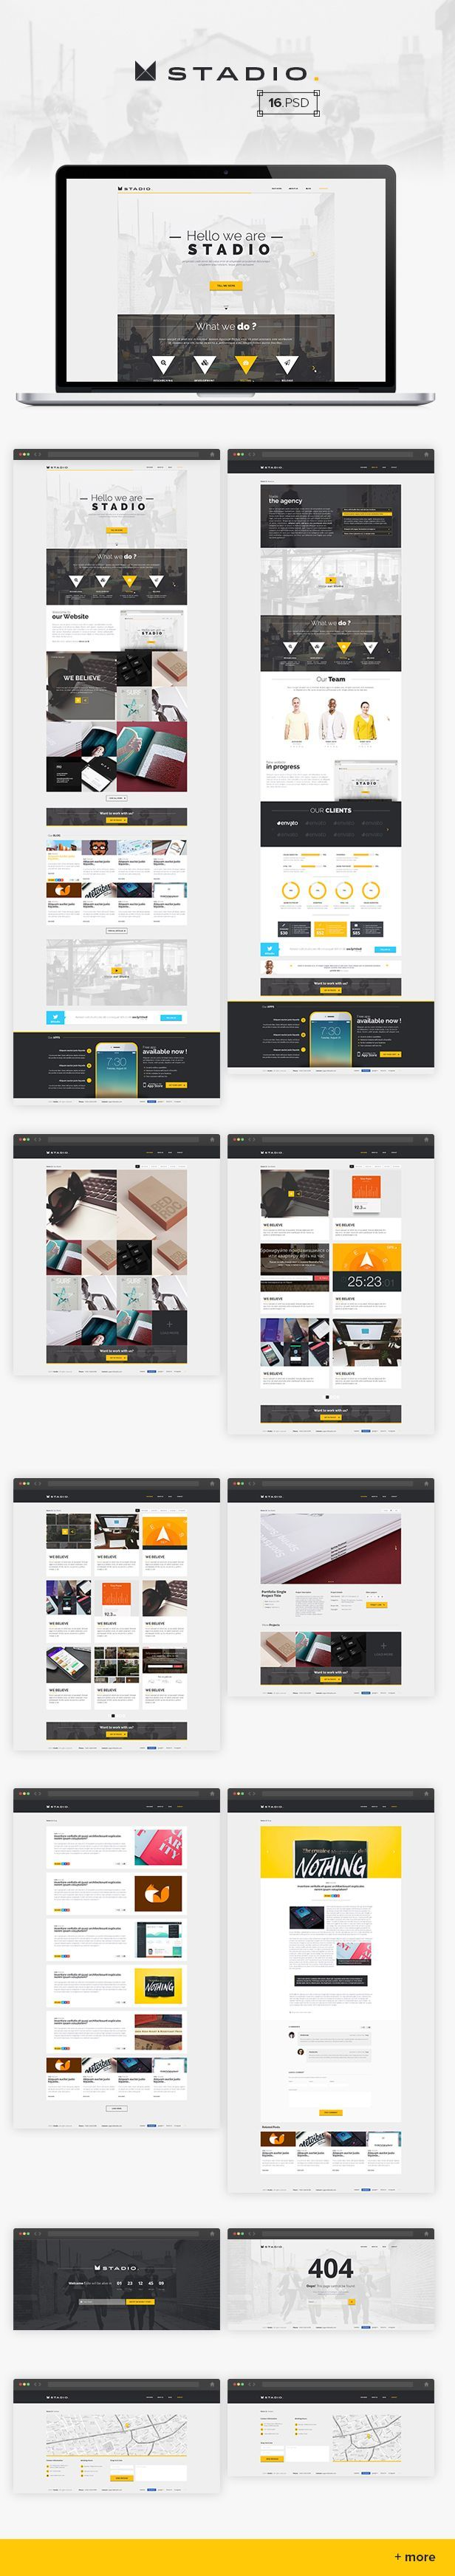 Stadio-Multipurpose-Creative-Template